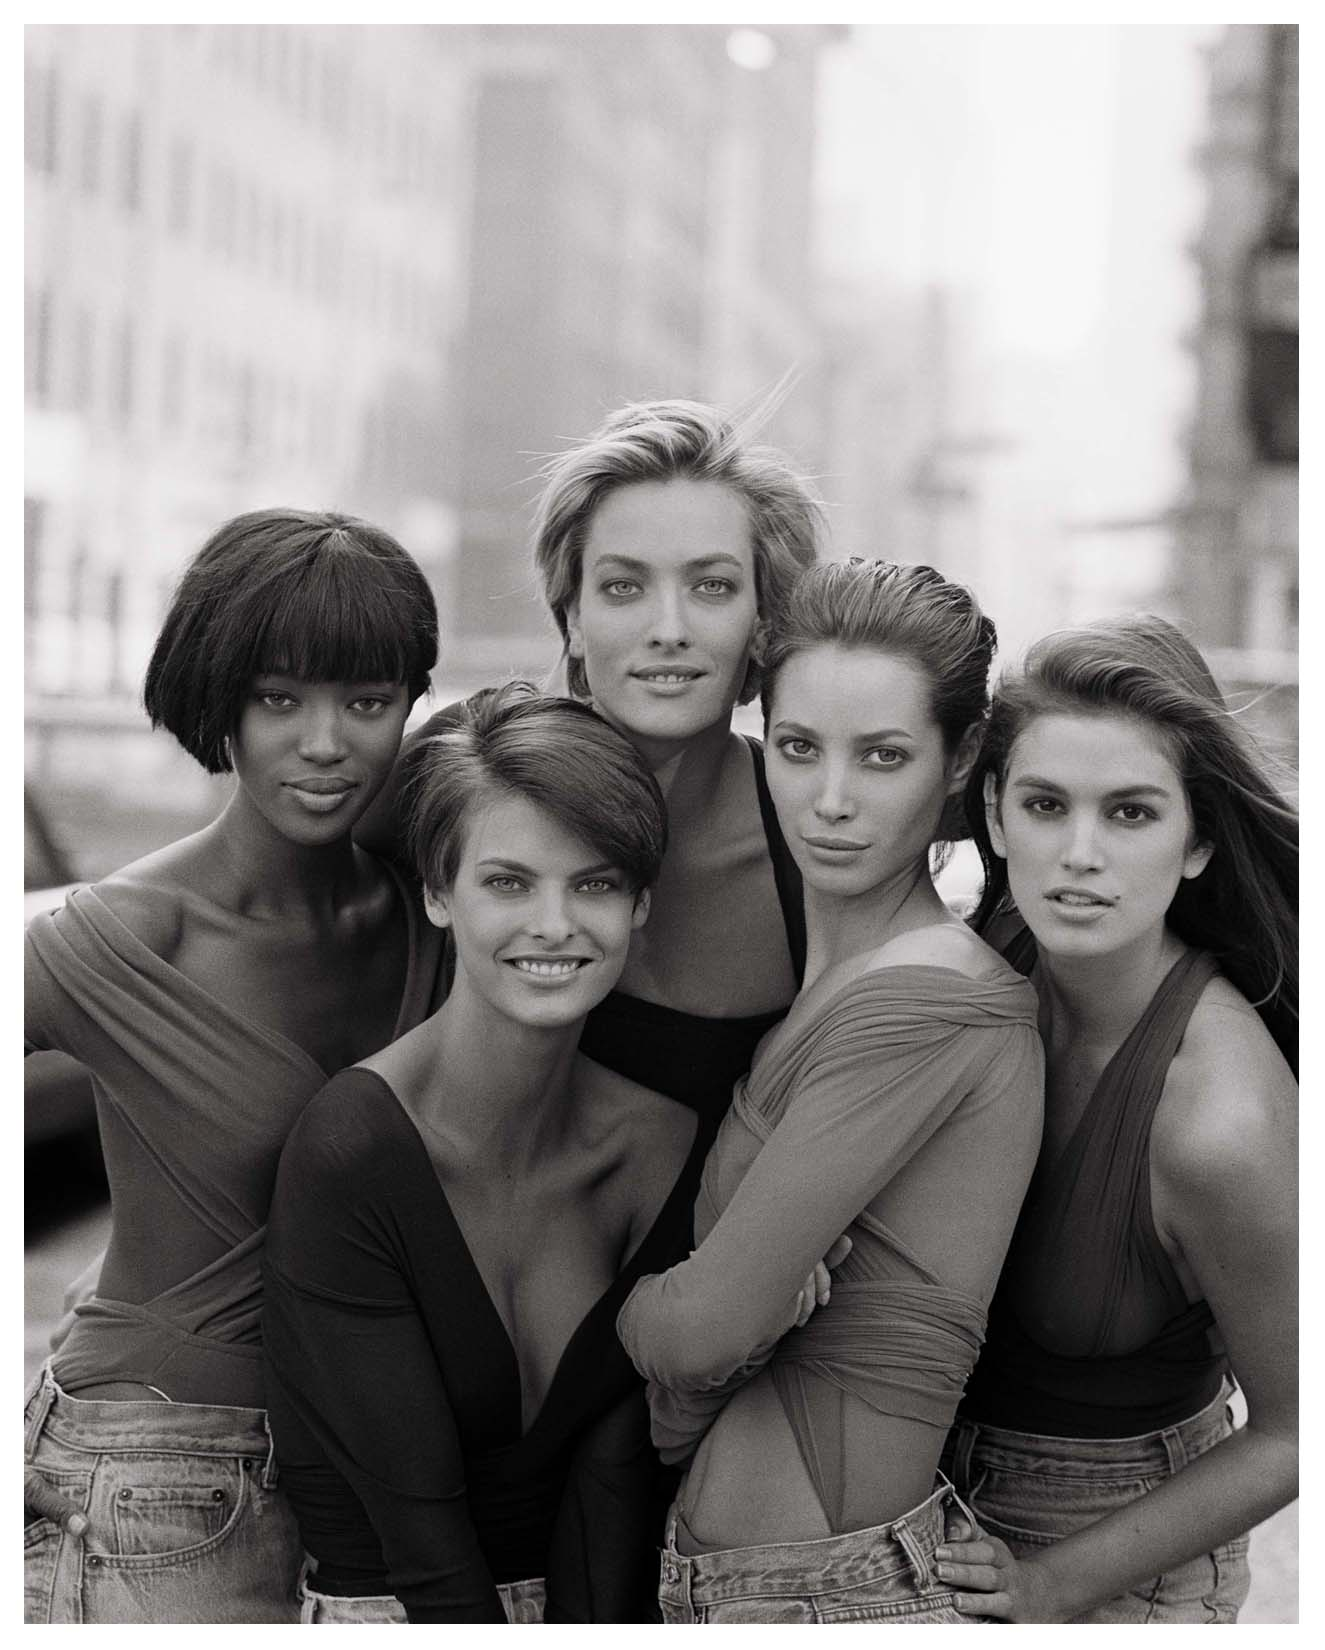 cindy-crawford-christy-turlington-tatjana-patitz-linda-evangelista-naomi-campel-by-peter-lindbergh-1990.jpg